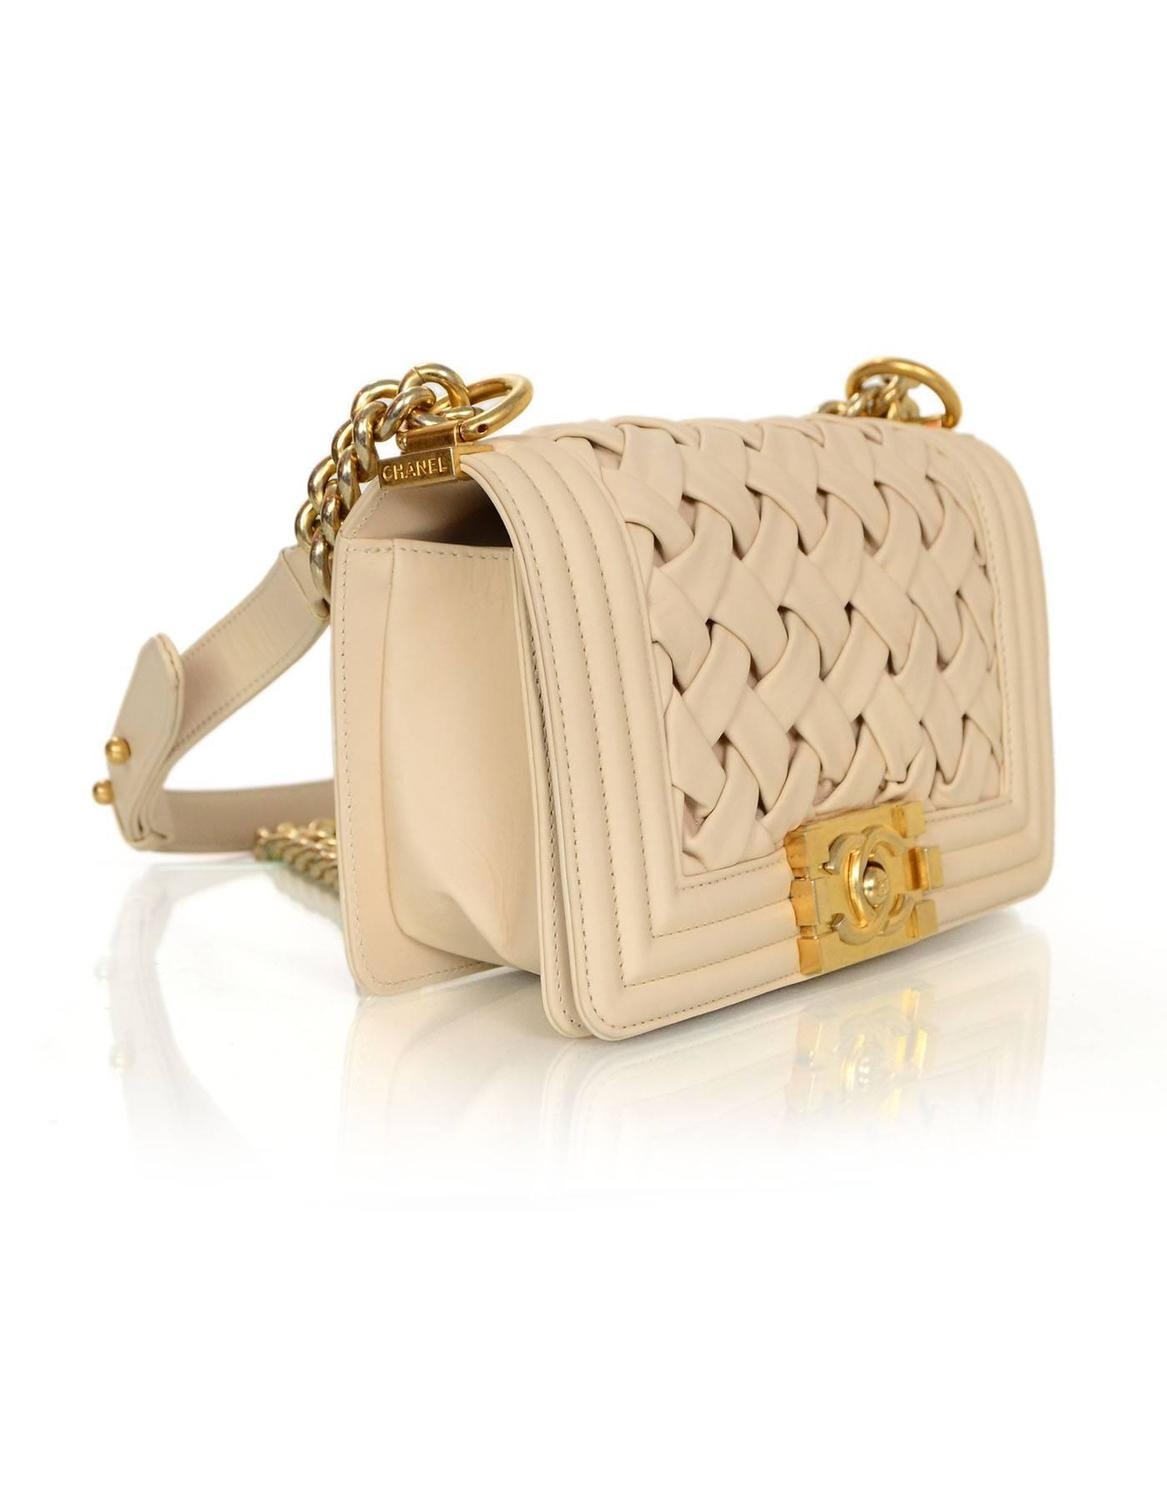 6a00a4a4529f Chanel Limited Edition Bags 2013 | Stanford Center for Opportunity ...